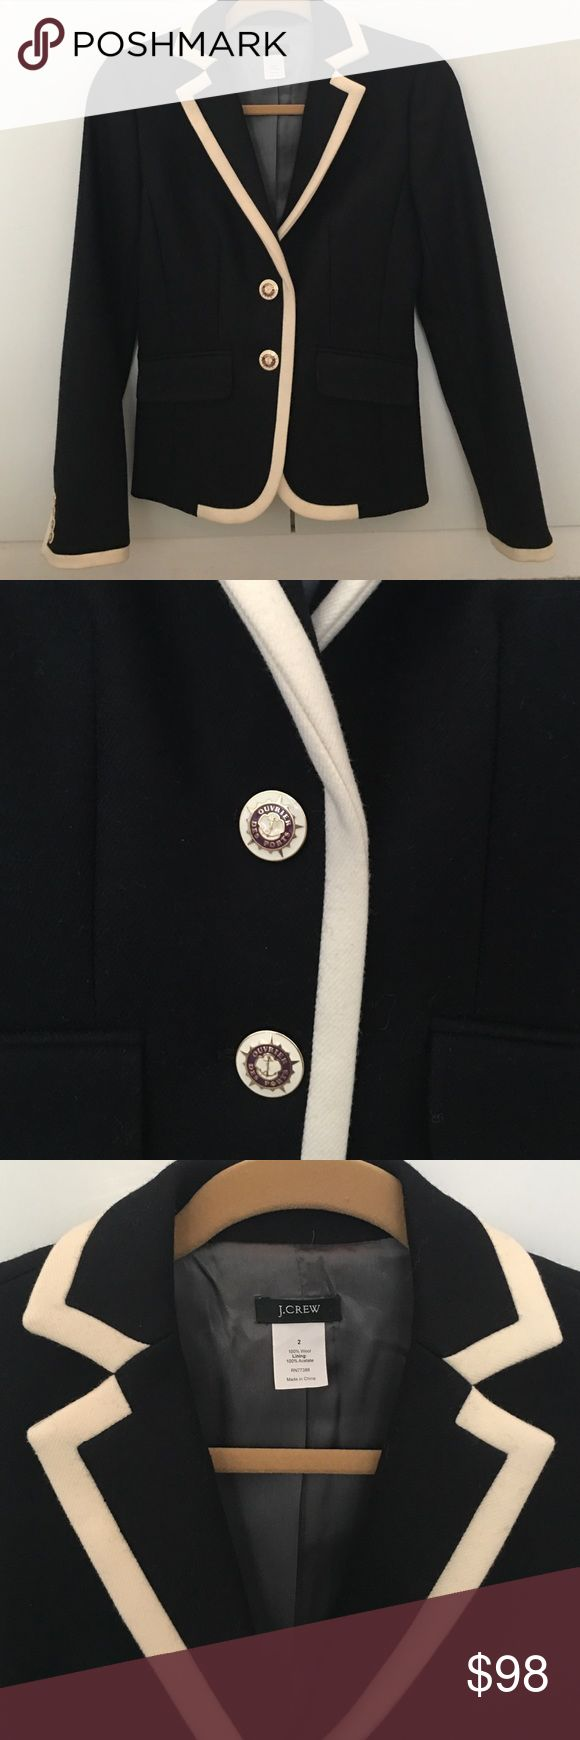 Gorgeous J. Crew Lexington Blazer size 2 Beautiful thick wool blazer with ivory tipping.  Gorgeous enamel buttons.  Fully lined.  Perfect condition, like new, flawless.  Rare and beautiful from 2007 when J. Crew quality was so awesome! J. Crew Jackets & Coats Blazers